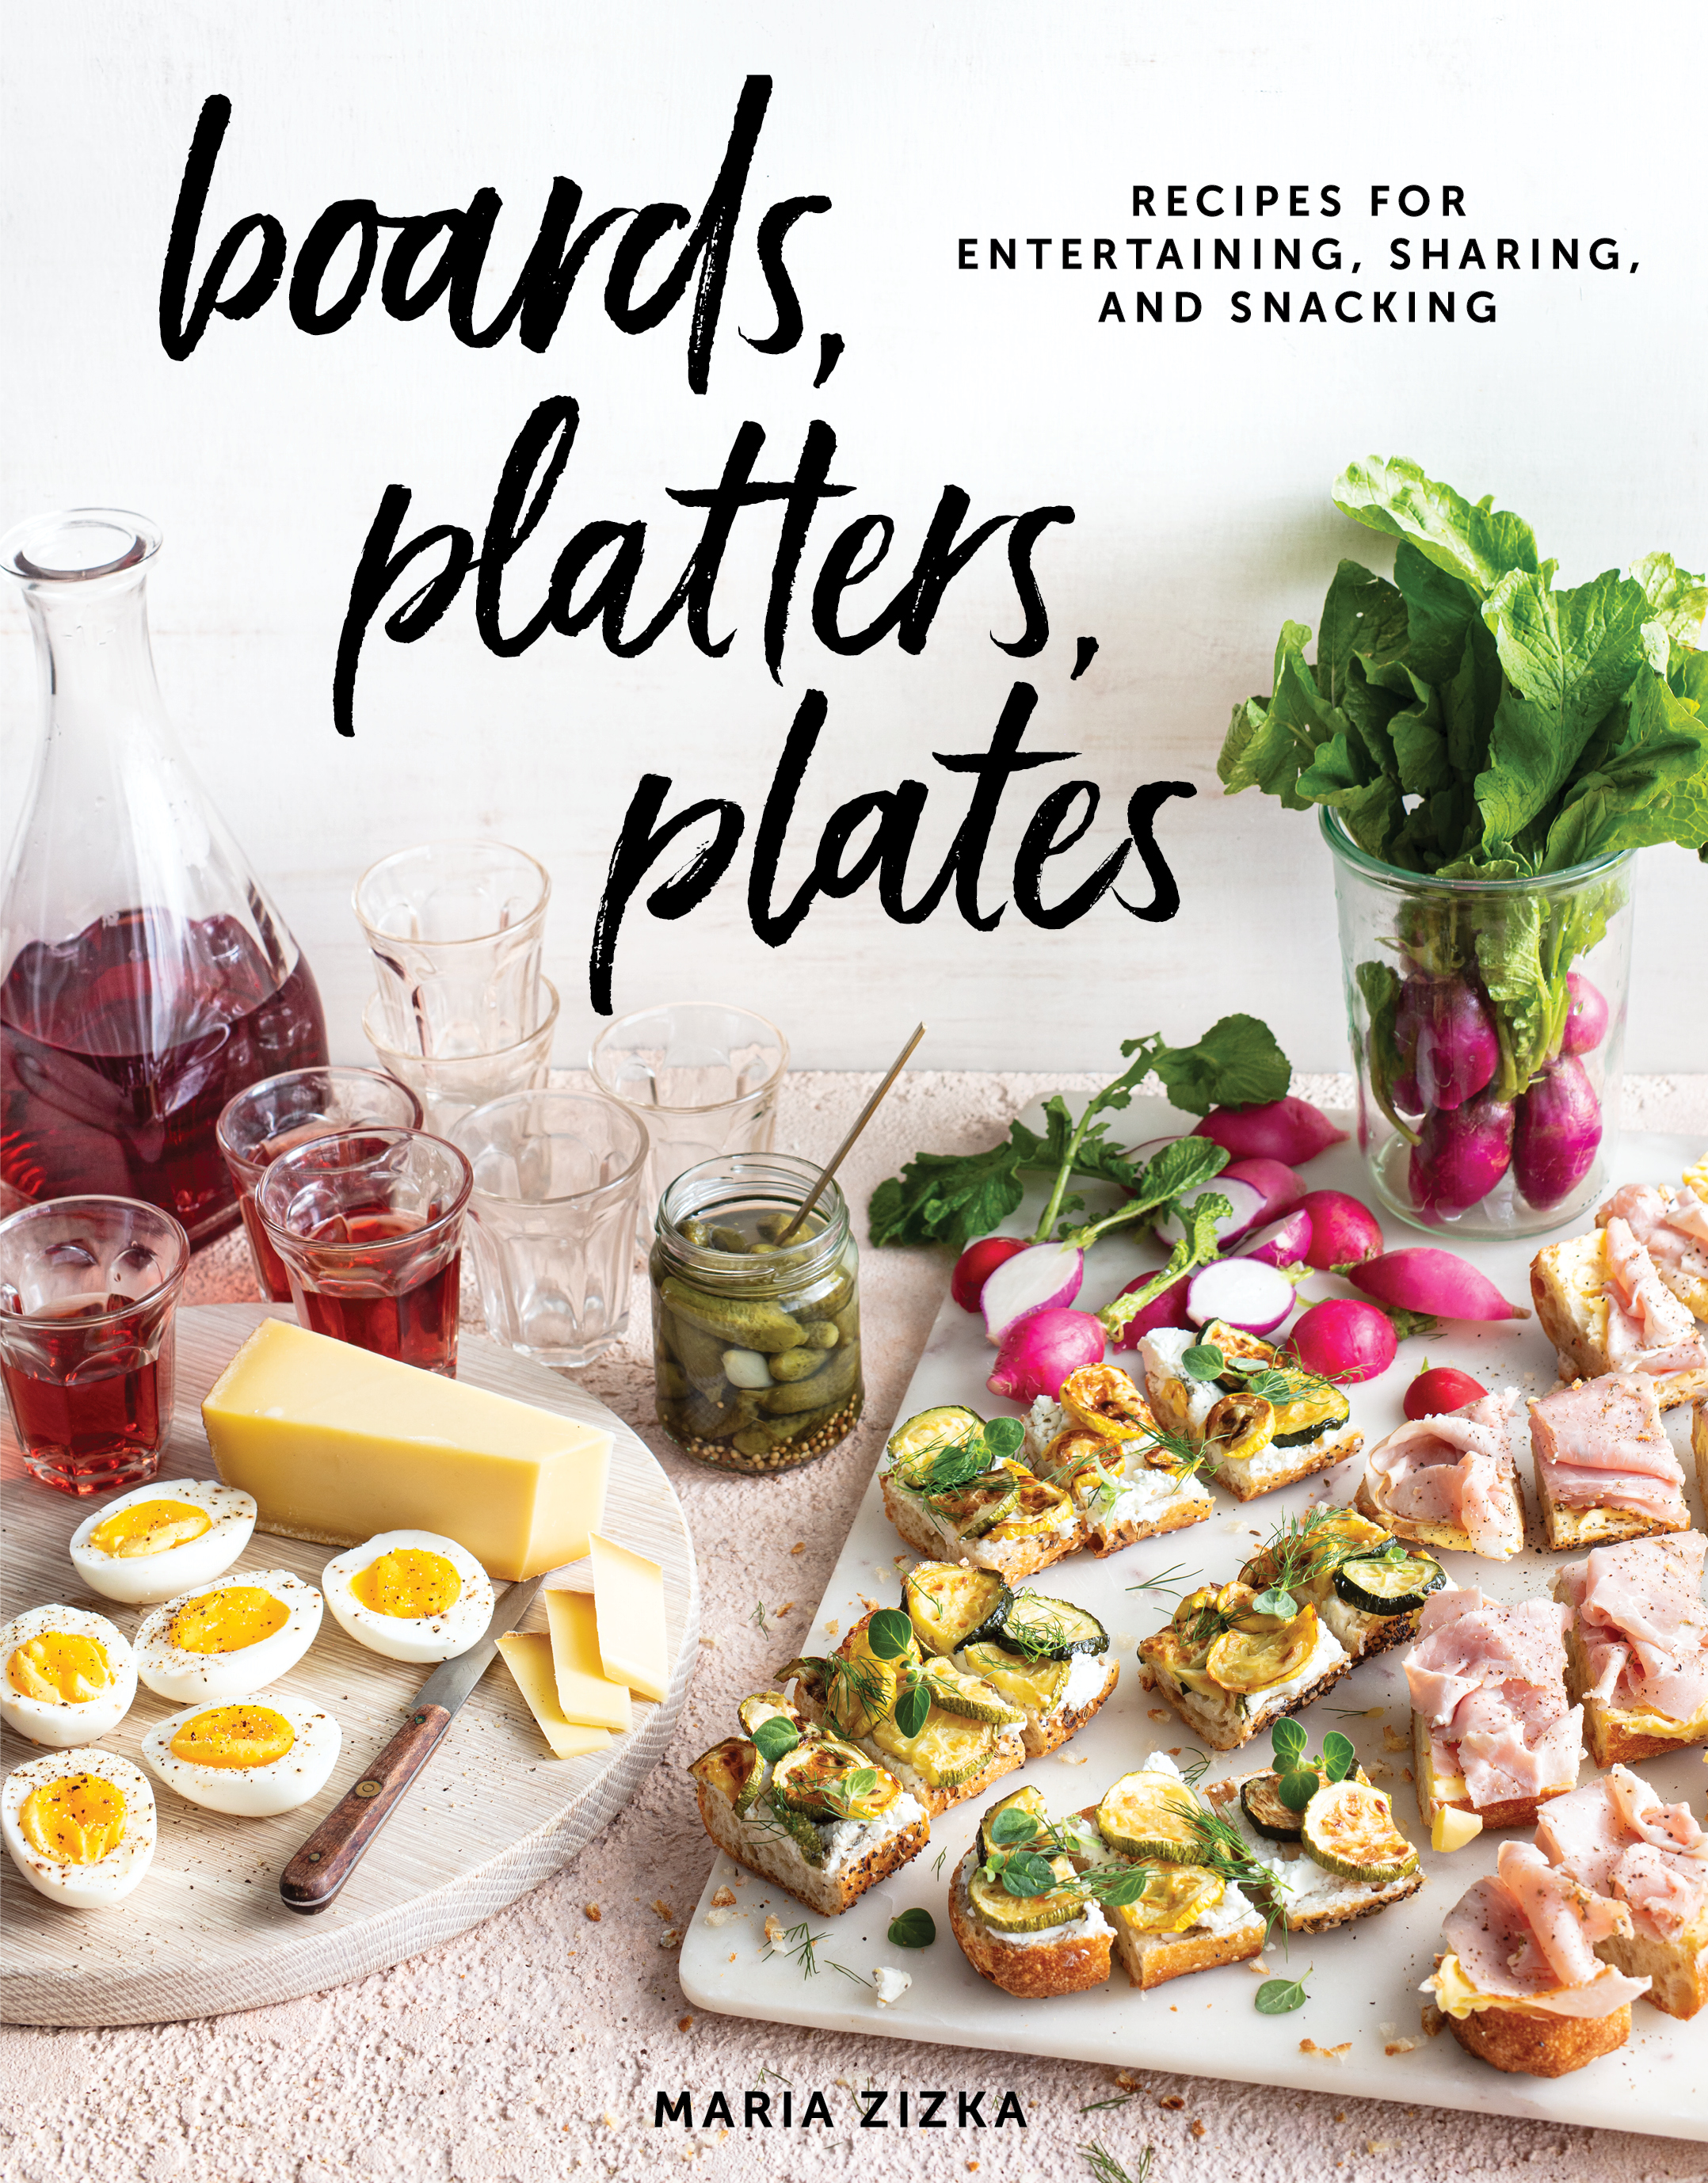 Boards, Platters, Plates Recipes for Entertaining, Sharing, and Snacking